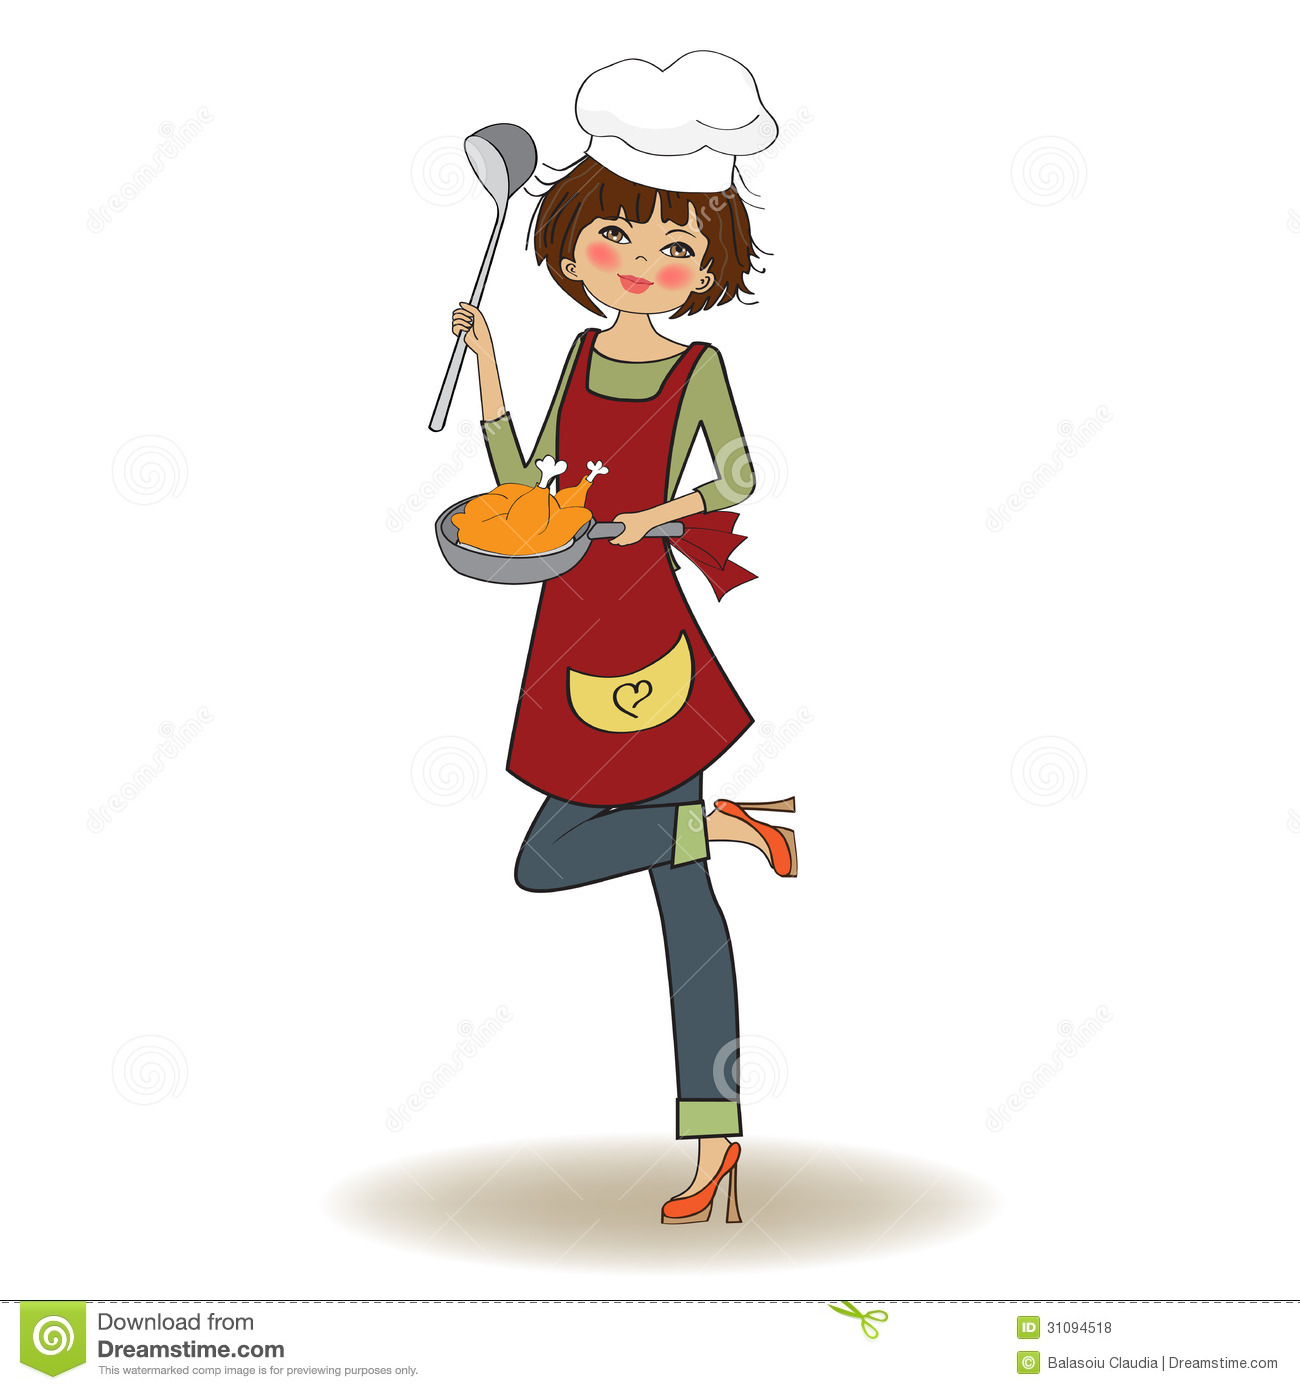 Woman Cooking Royalty Free Stock Photos - Image: 31094518